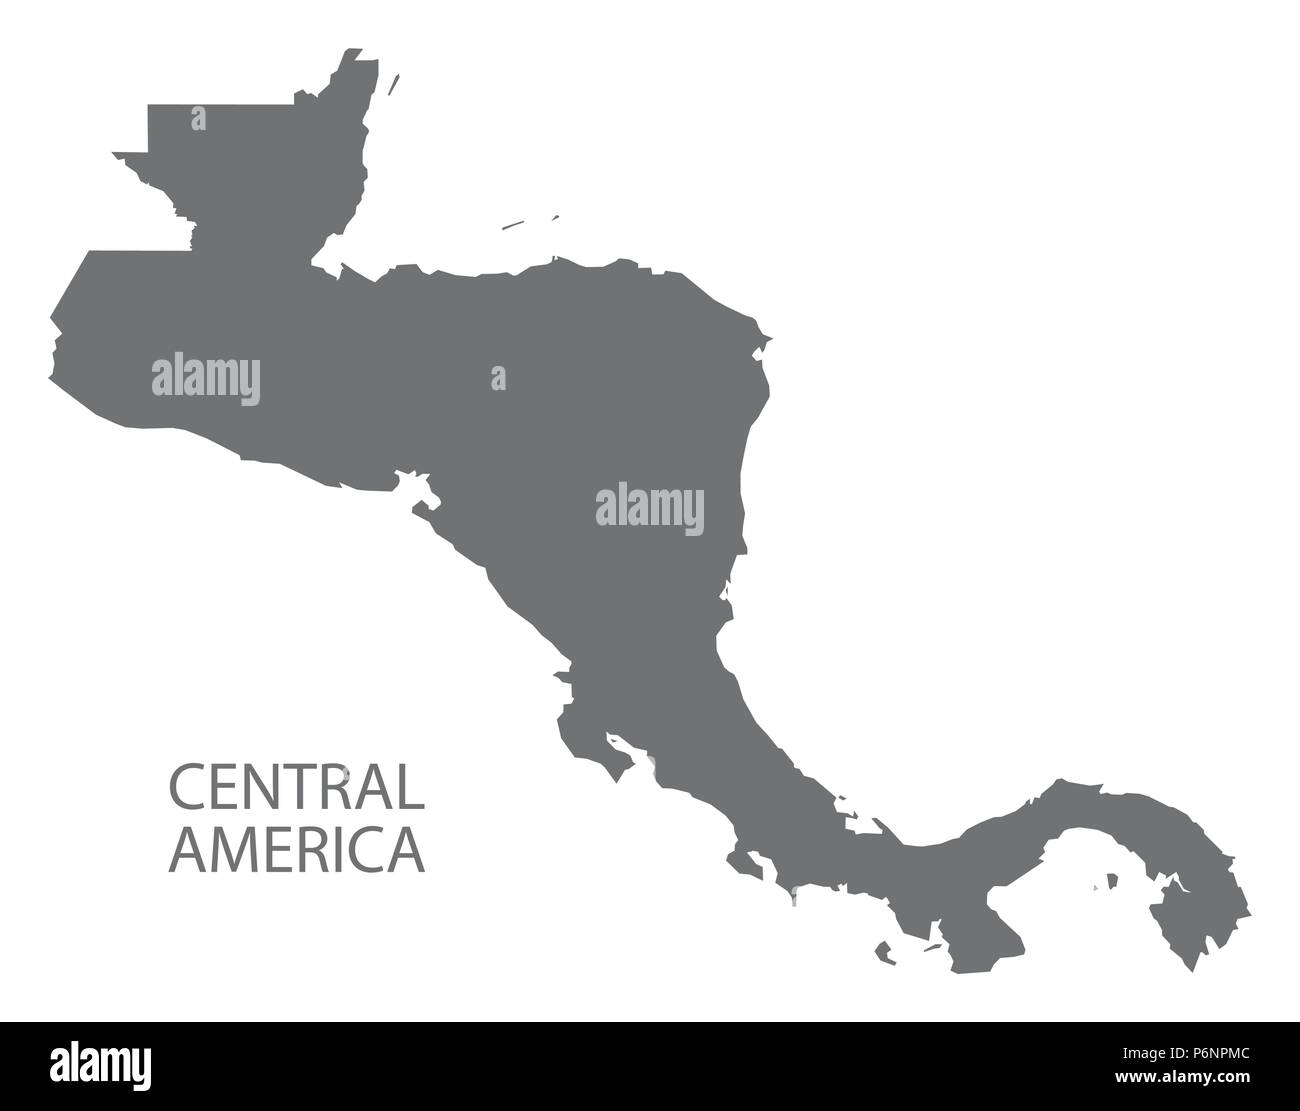 Central America map grey silhouette illustration Stock ...